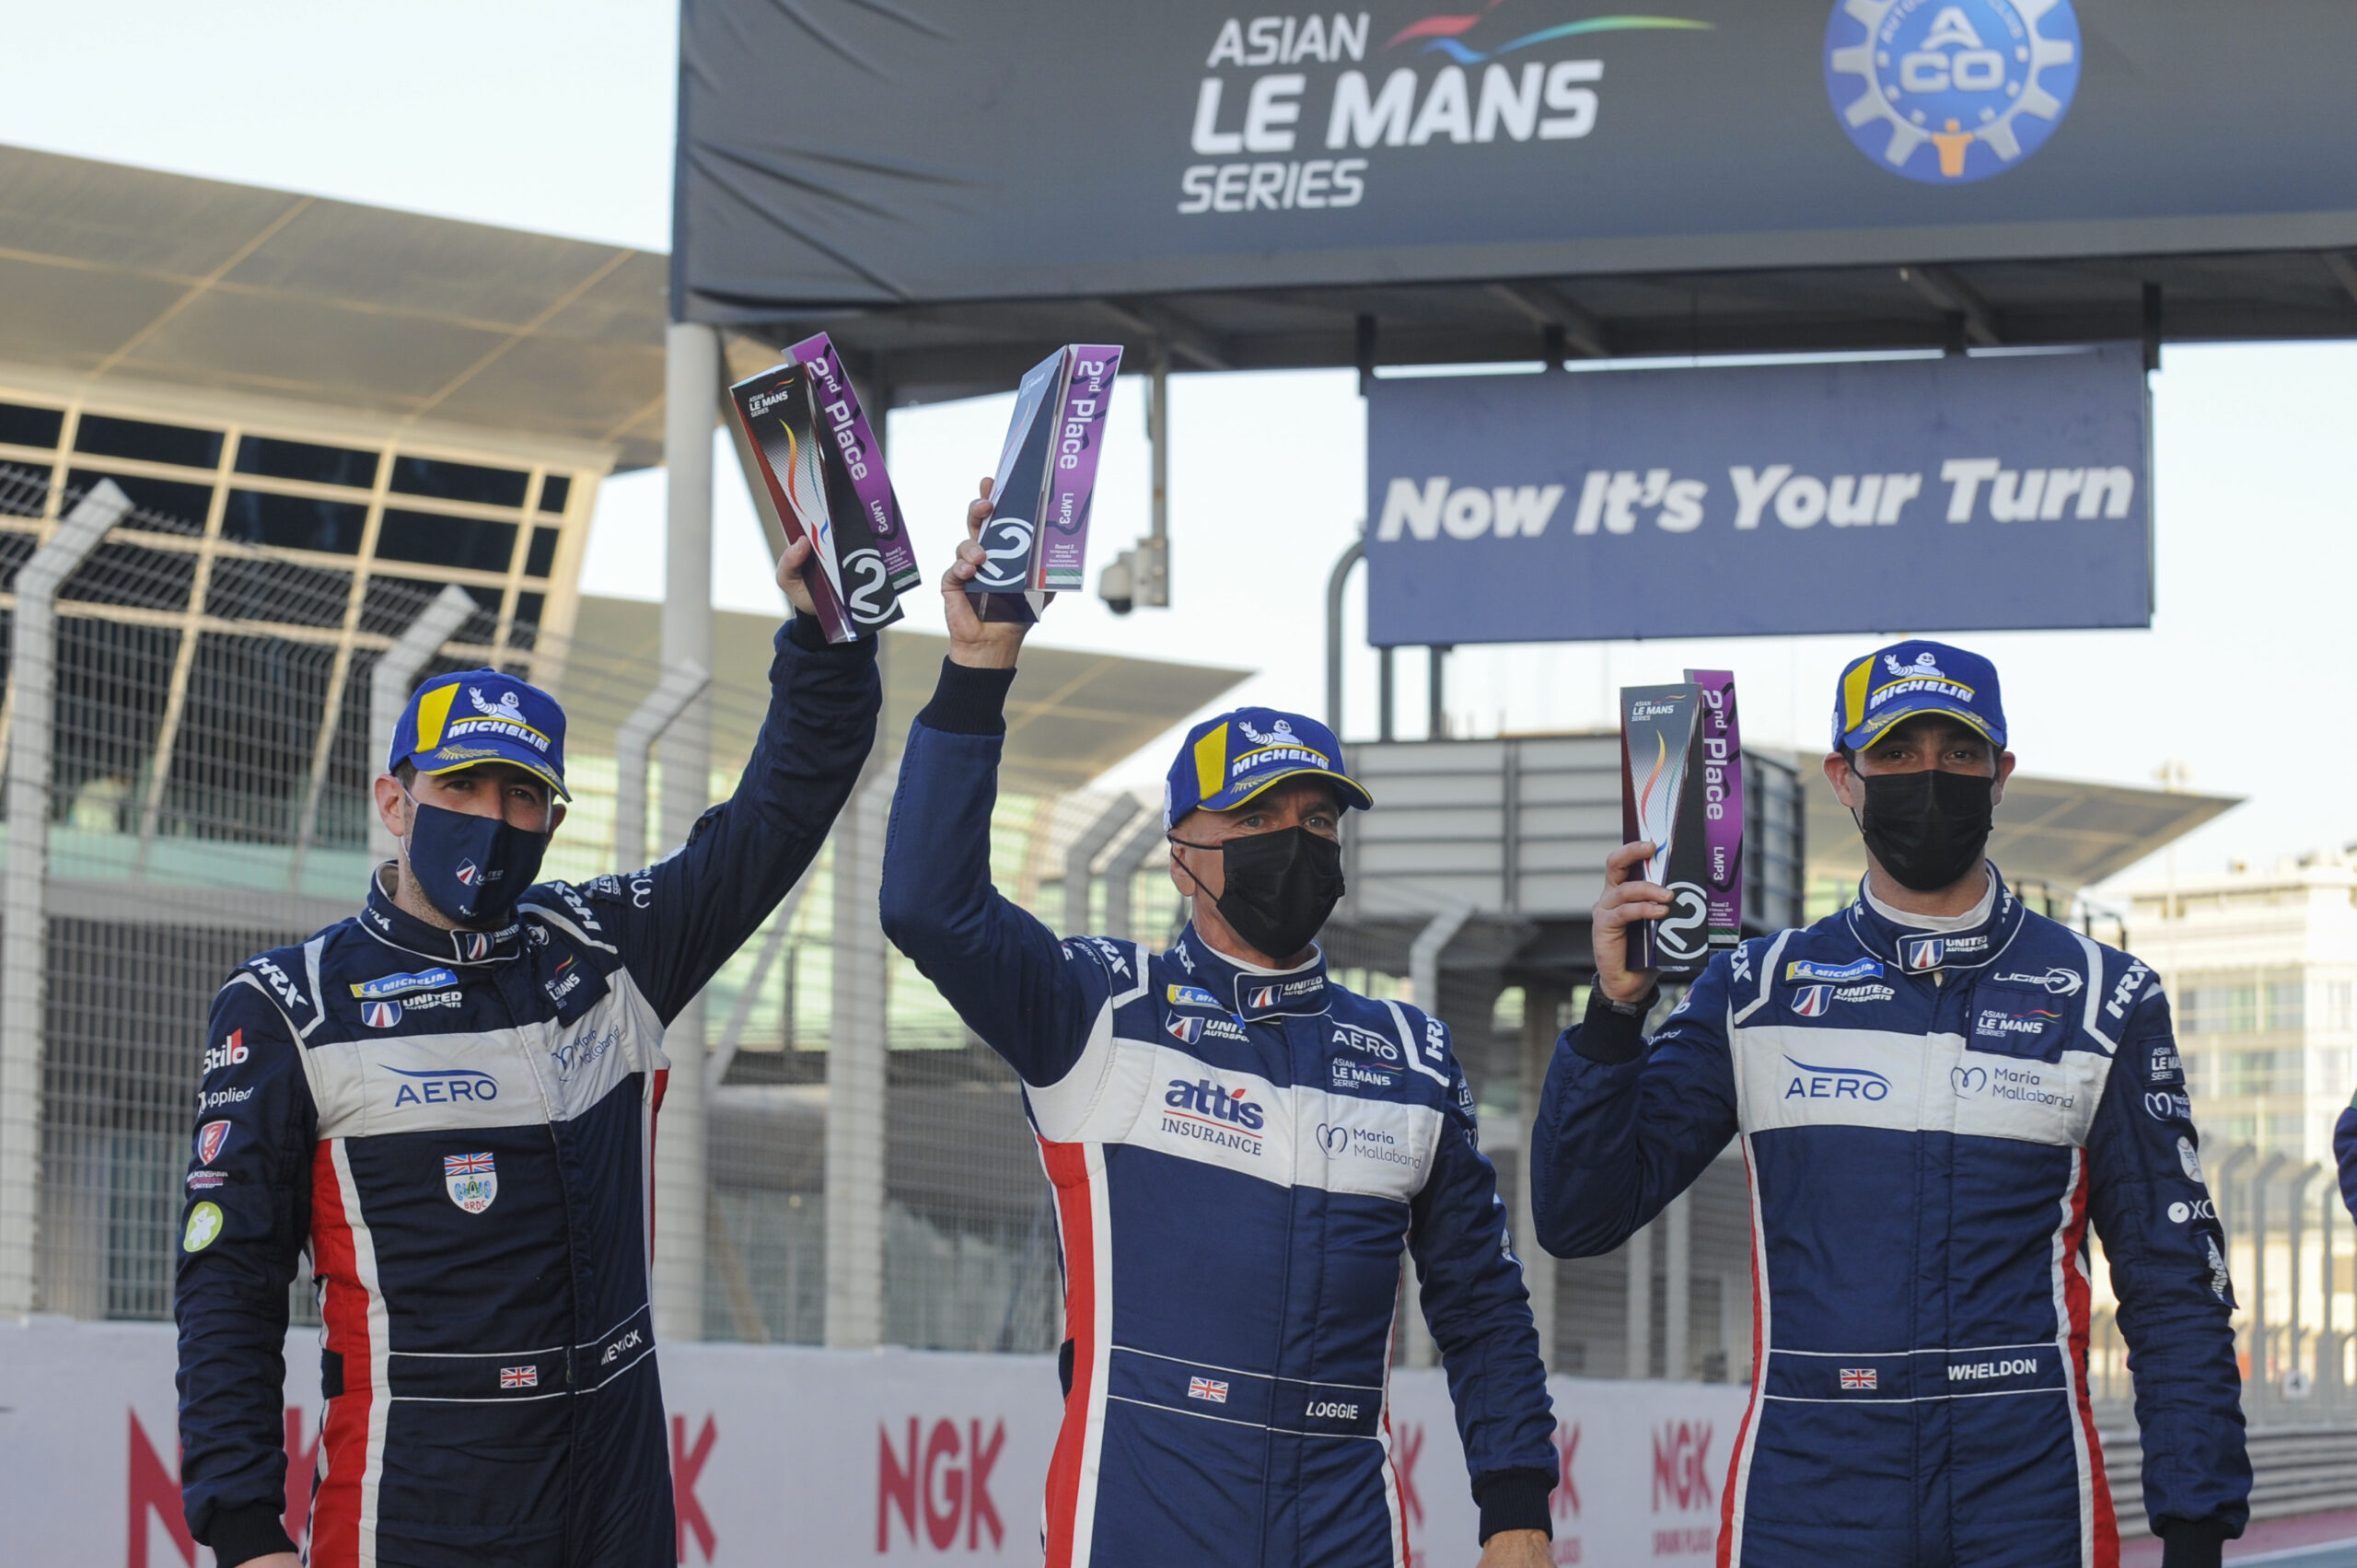 Meyrick on the podium in debut Asian Le Mans Series weekend